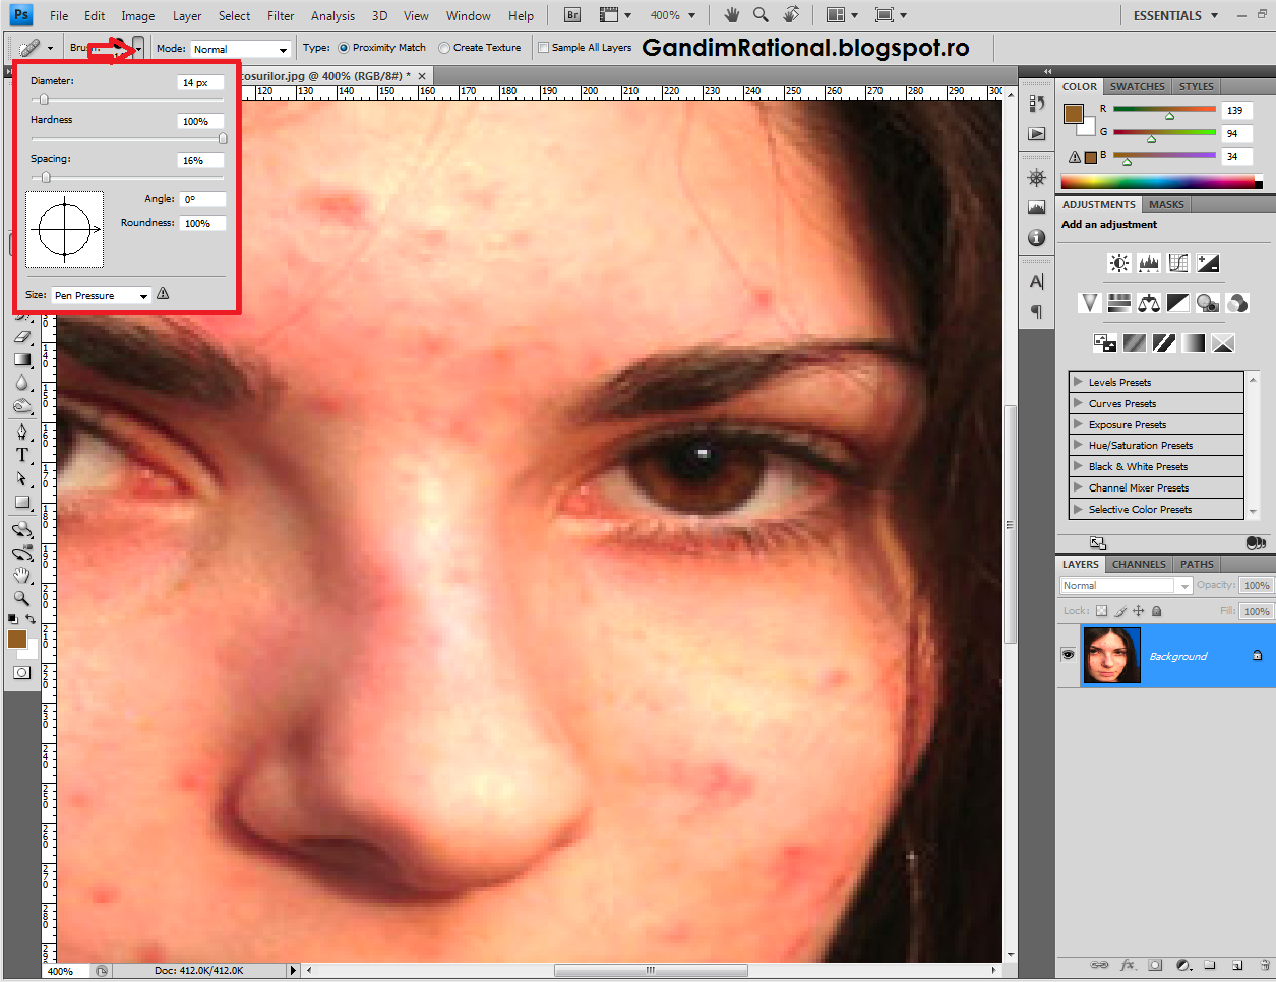 Tutorial Photoshop CS4 Inlaturarea Cosurilor